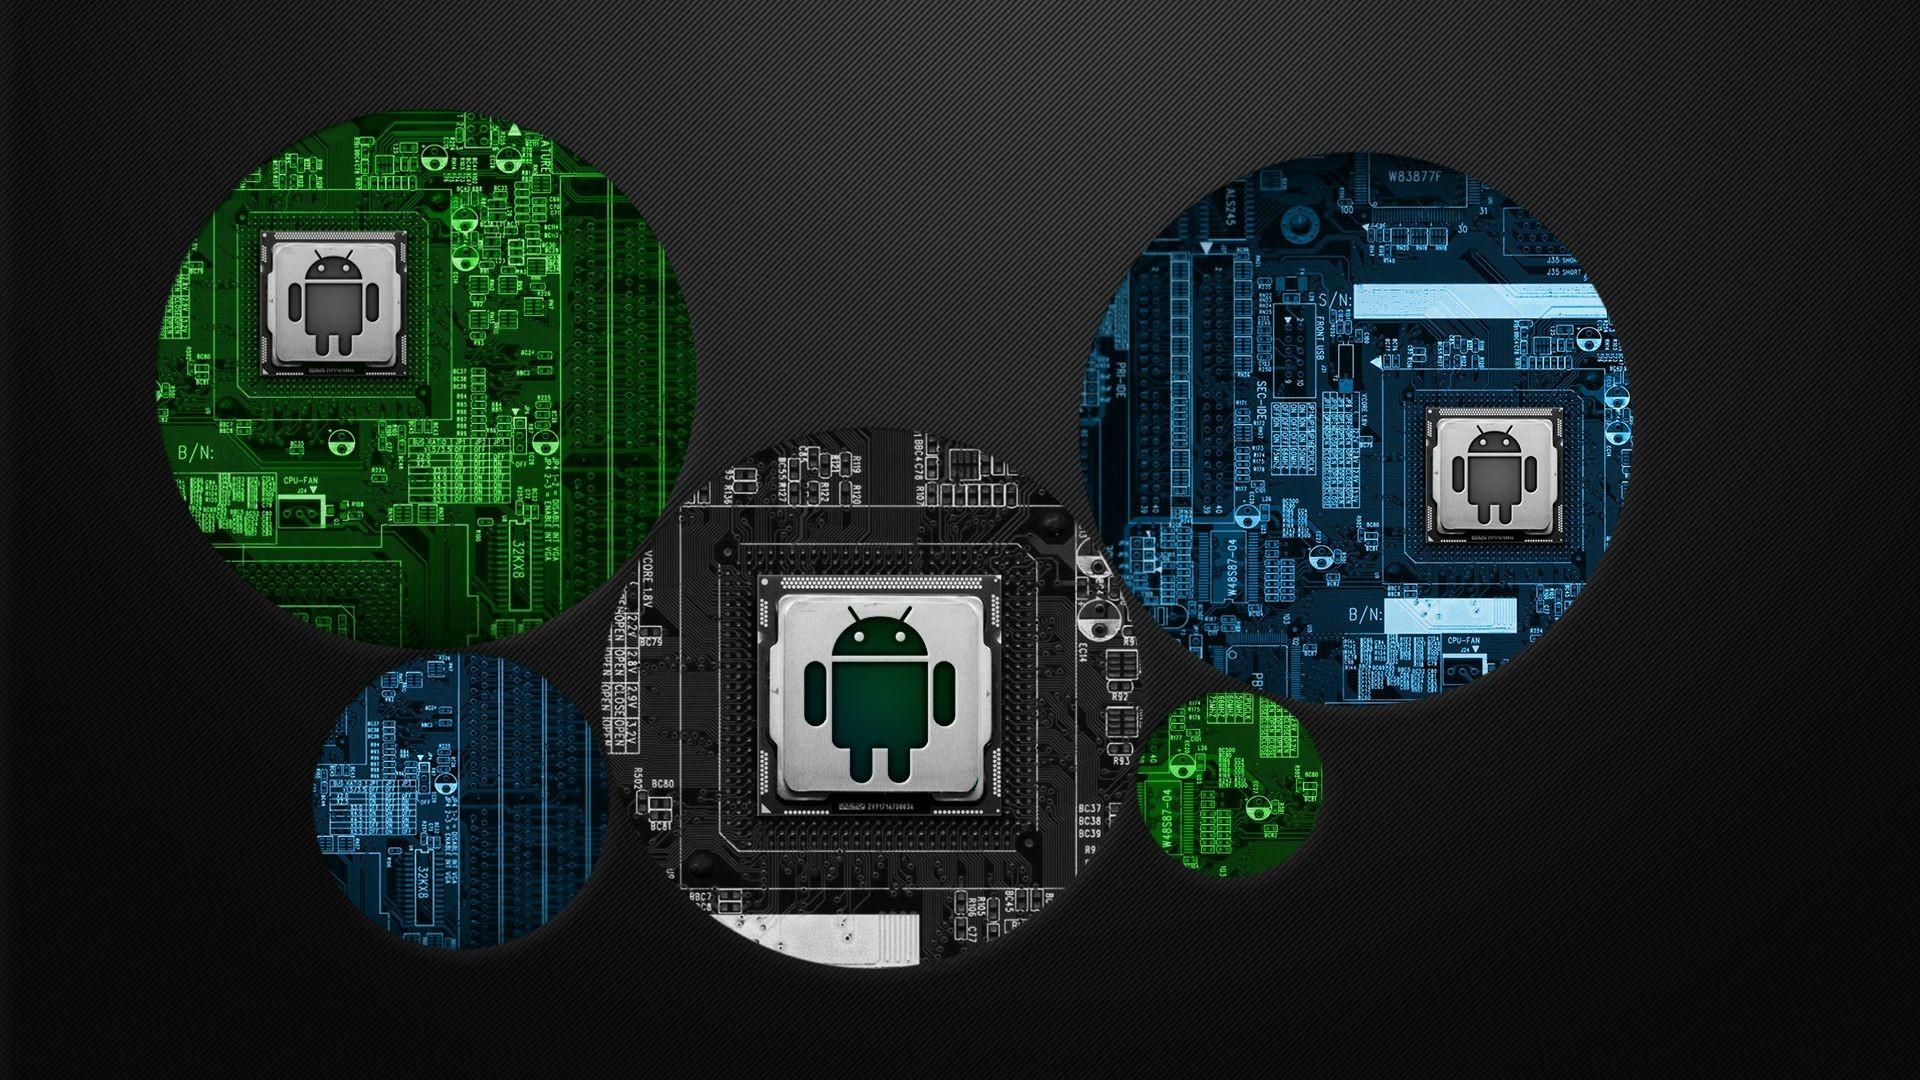 Android Circuit Board Circuits Processor CPU Motherboard wallpaper      67431   WallpaperUP